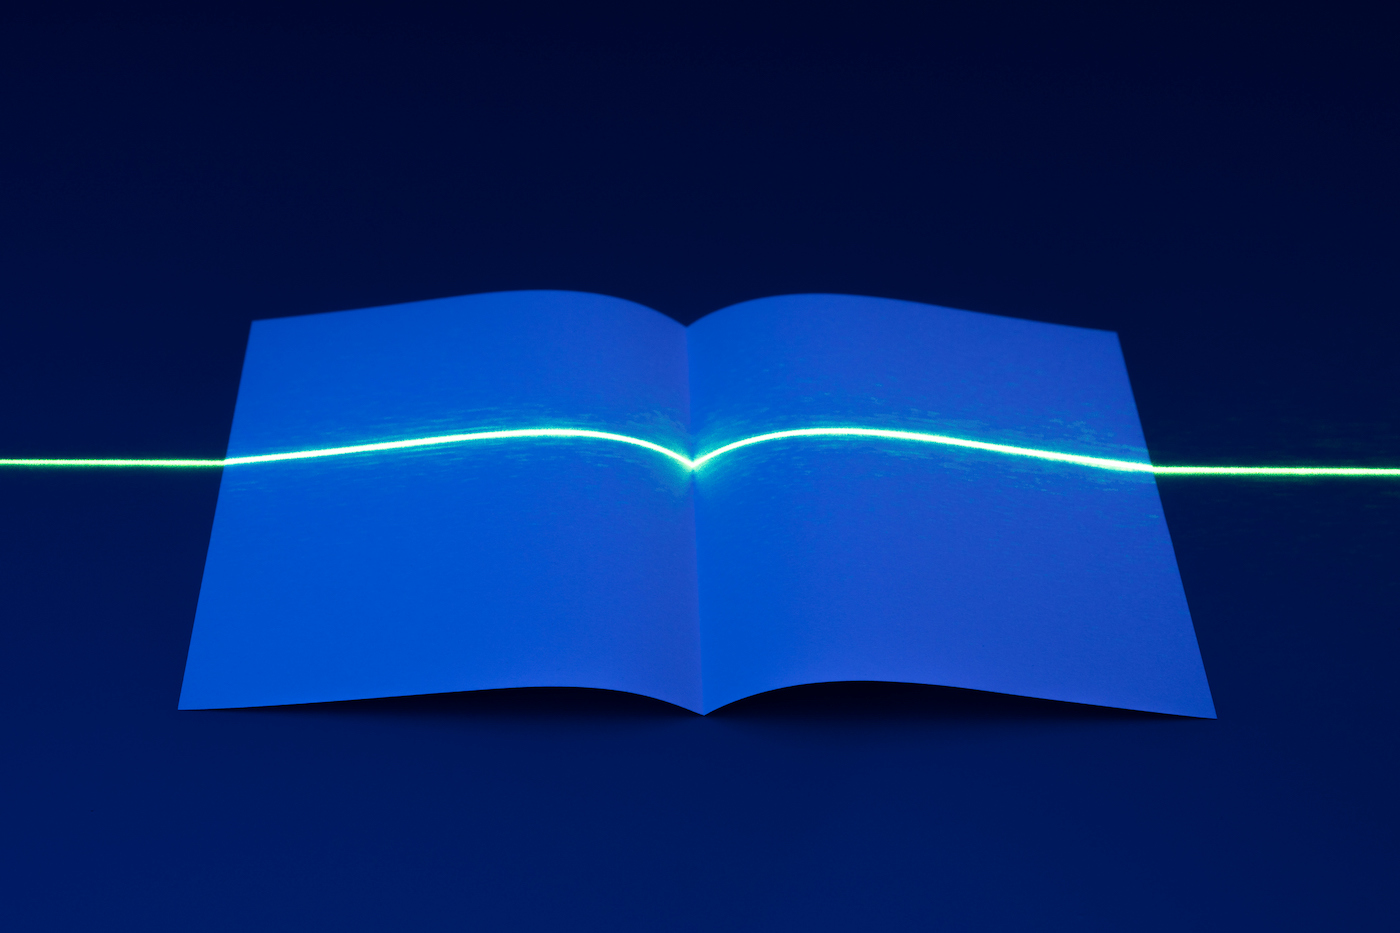 Laser Light Interrupted by Unfolded Book Shape of Paper.